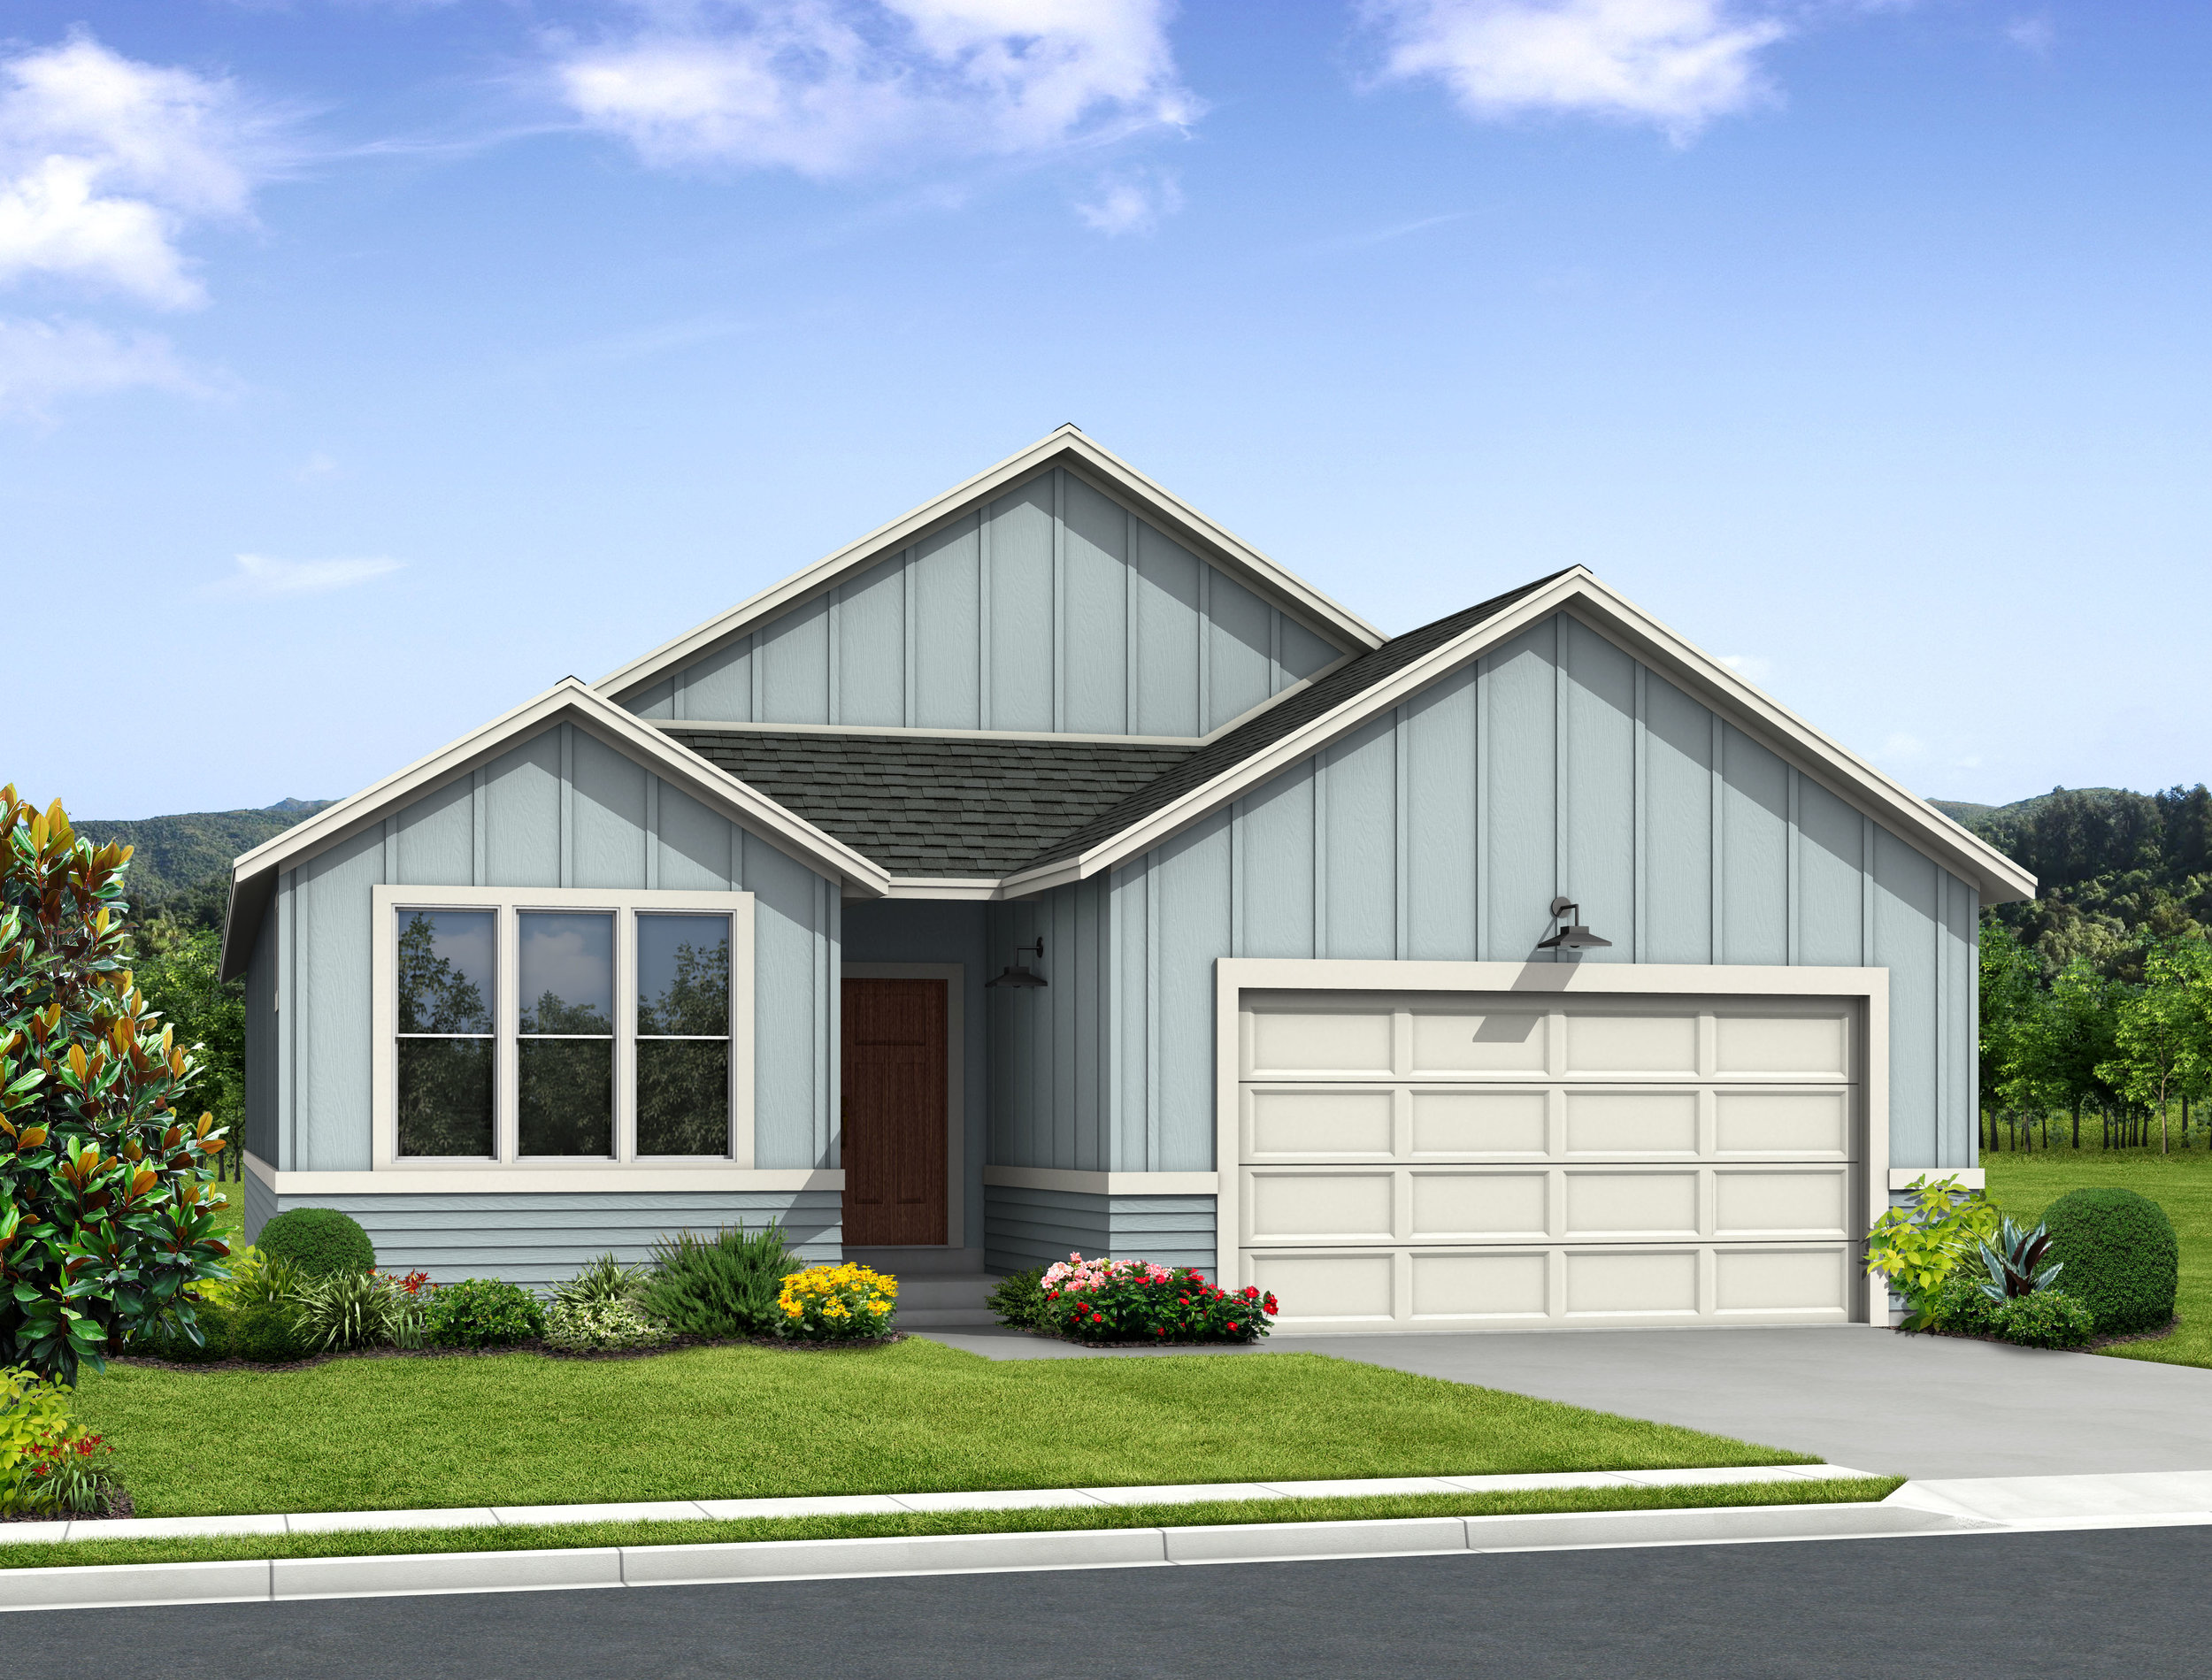 Keller Homes-Cumbre Vista-Farmhouse Series_304.jpg